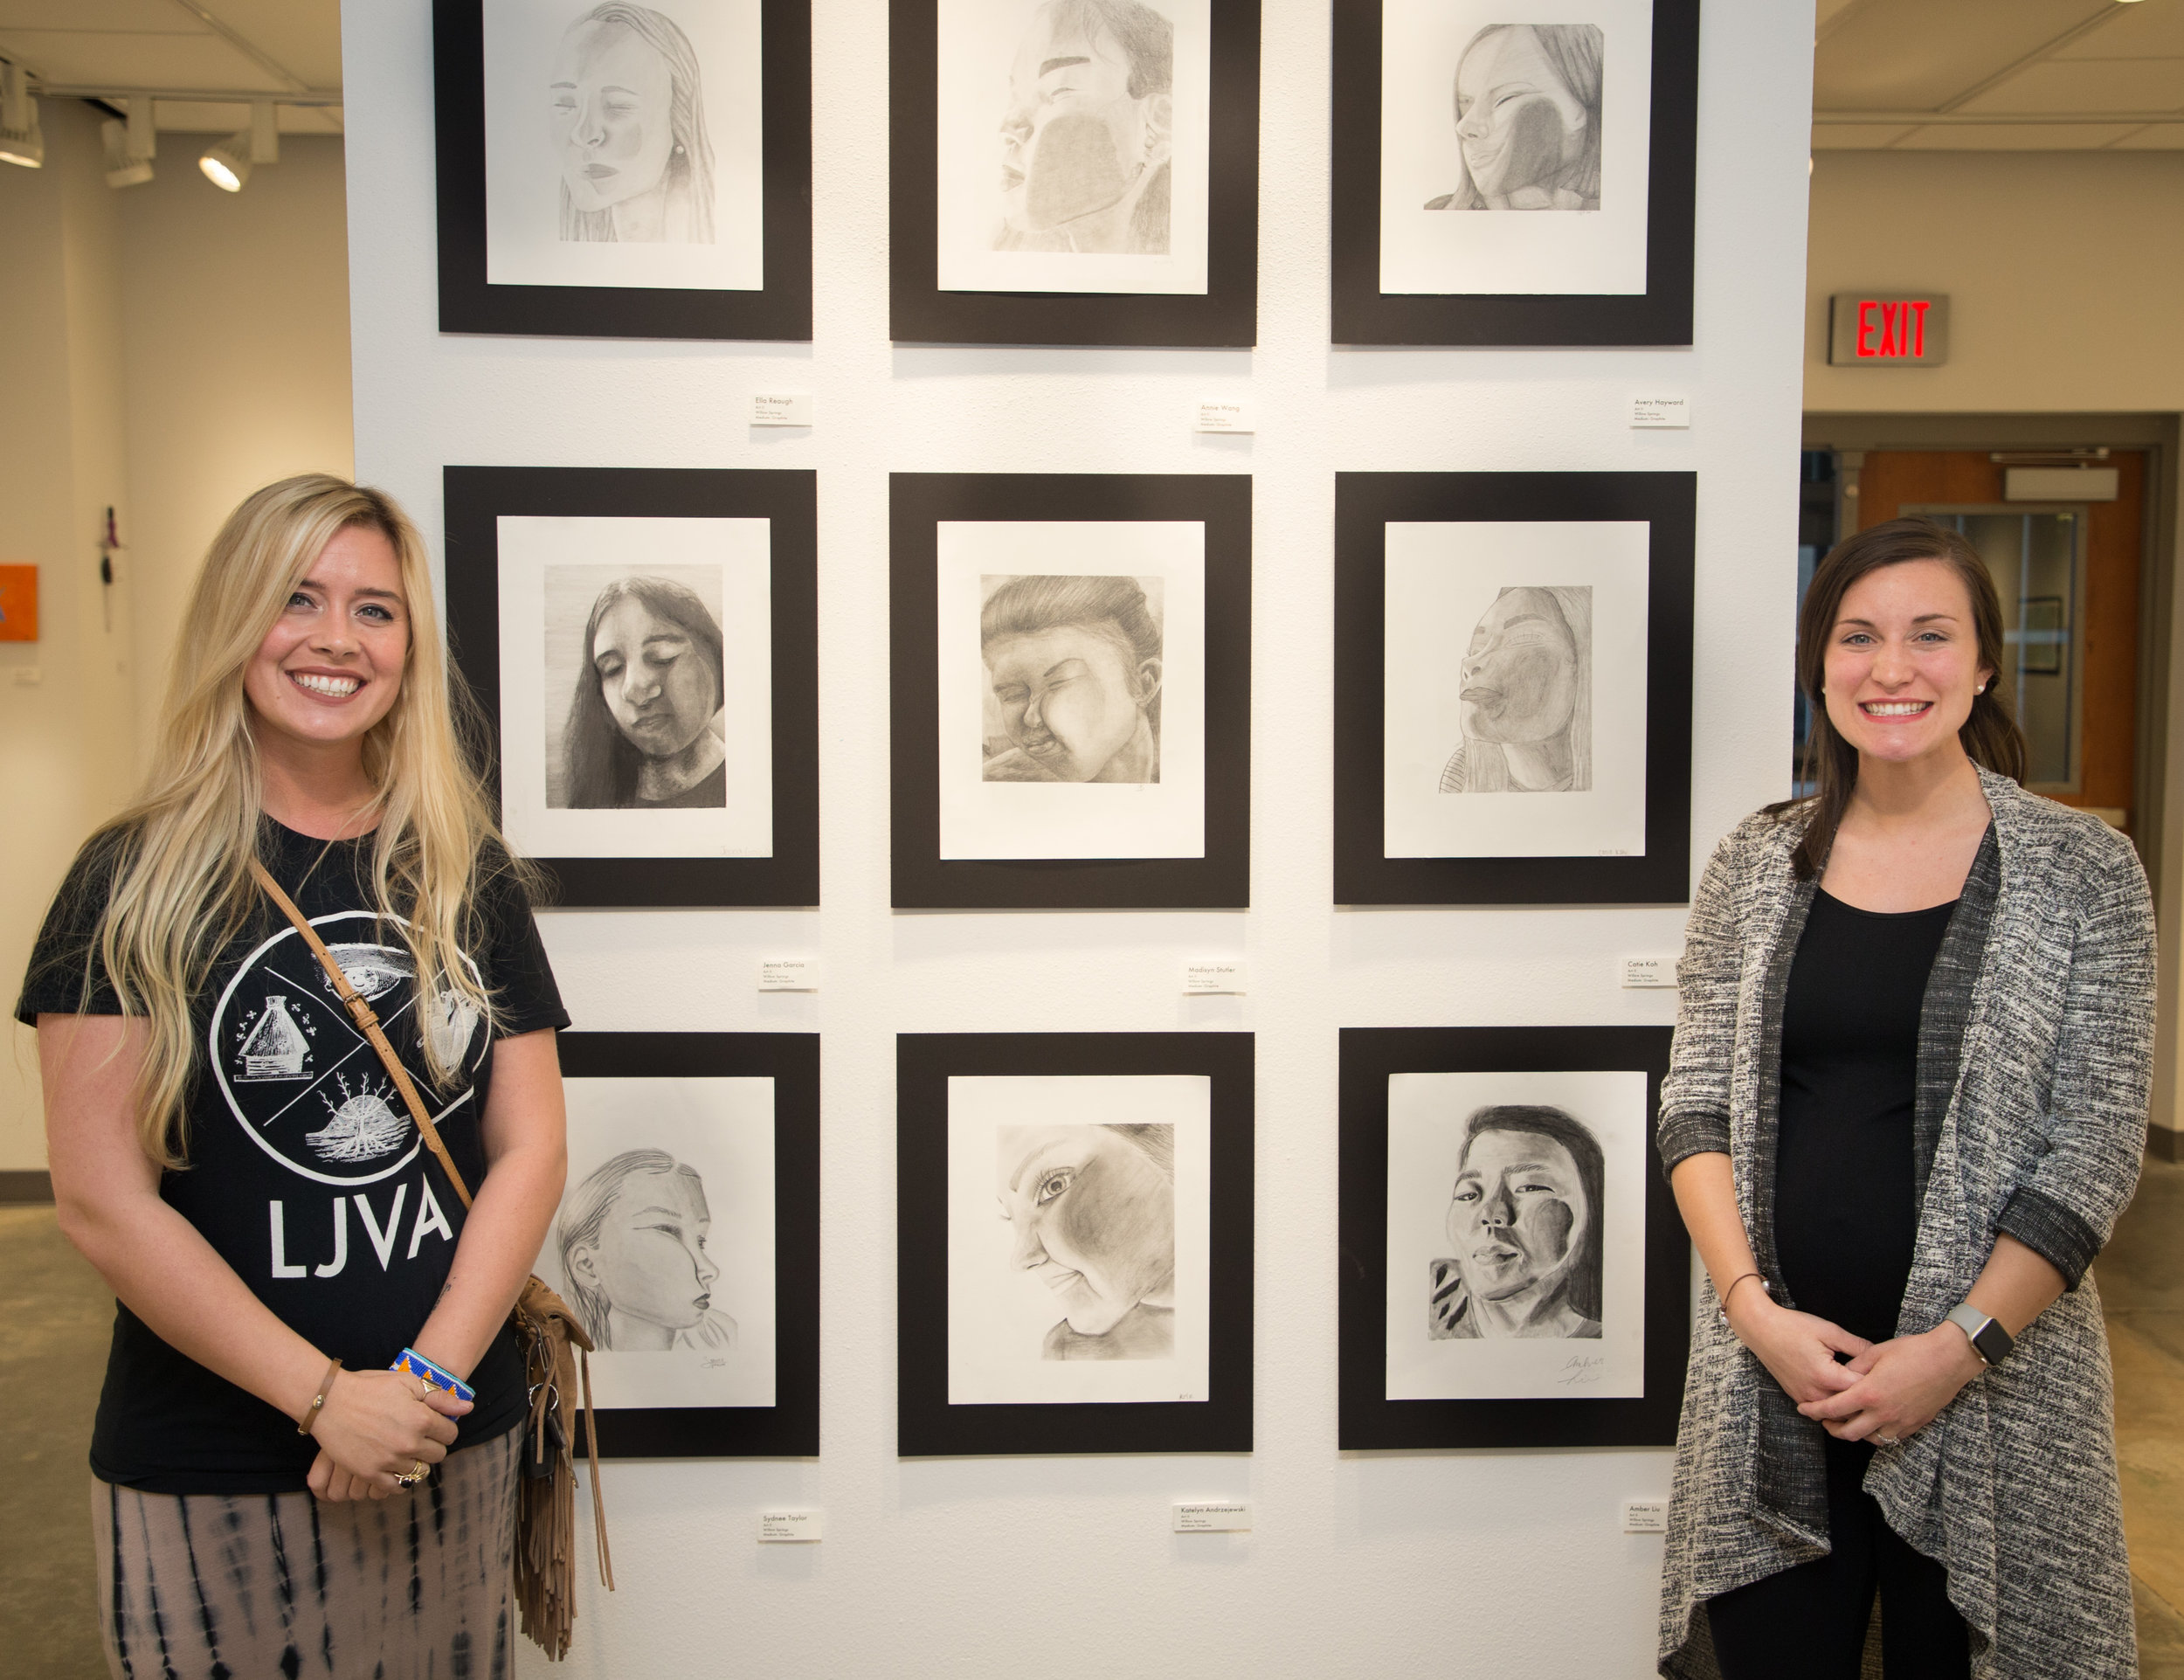 2- WSMS Art teacher Jenny Slaver (left) and SCIS Art teacher (right) greeted visitors at opening night of the art show.jpg